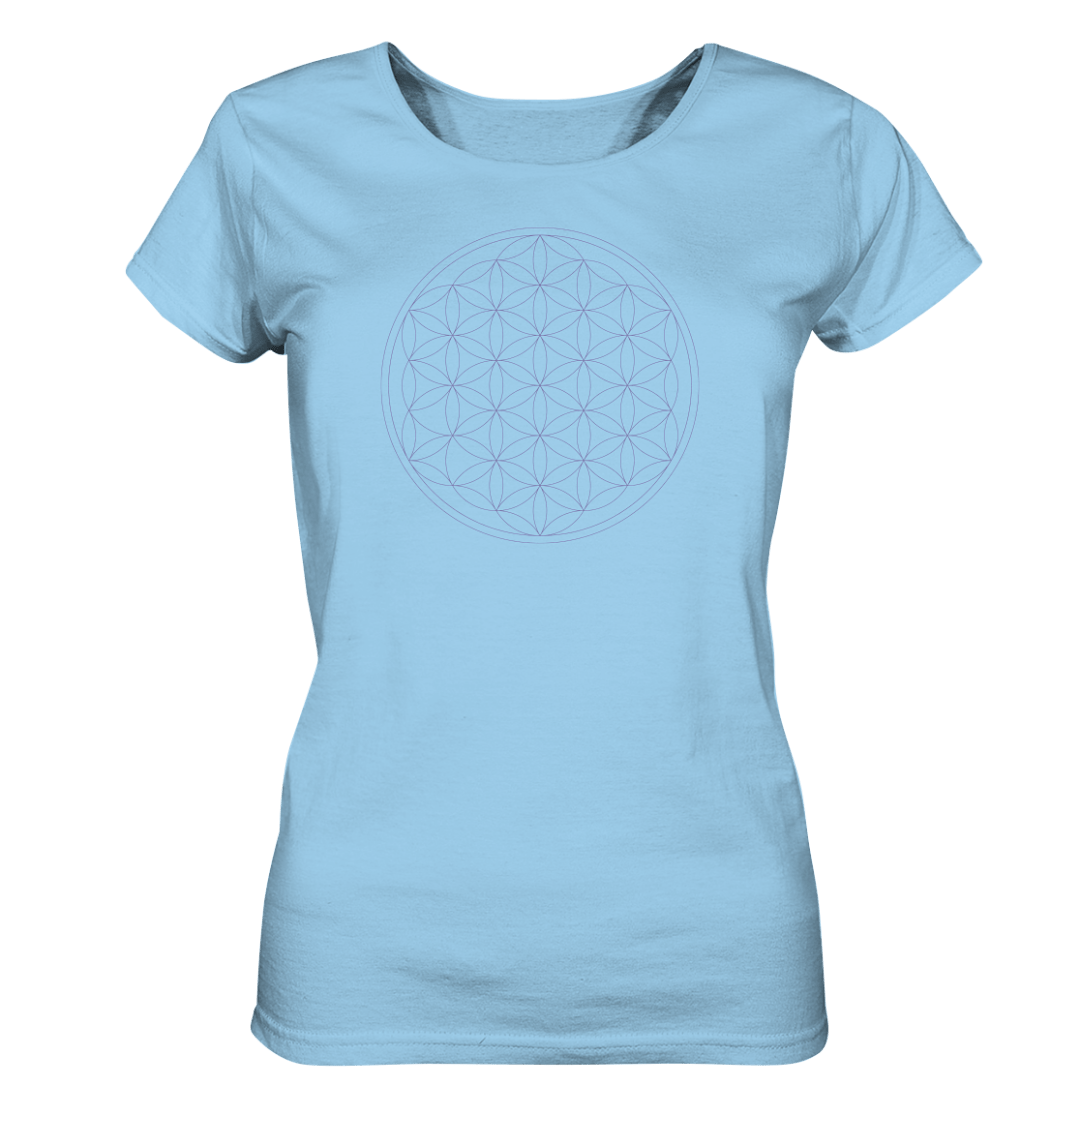 front ladies organic shirt 9fd0ed Flower of Life - Ladies Organic Shirt